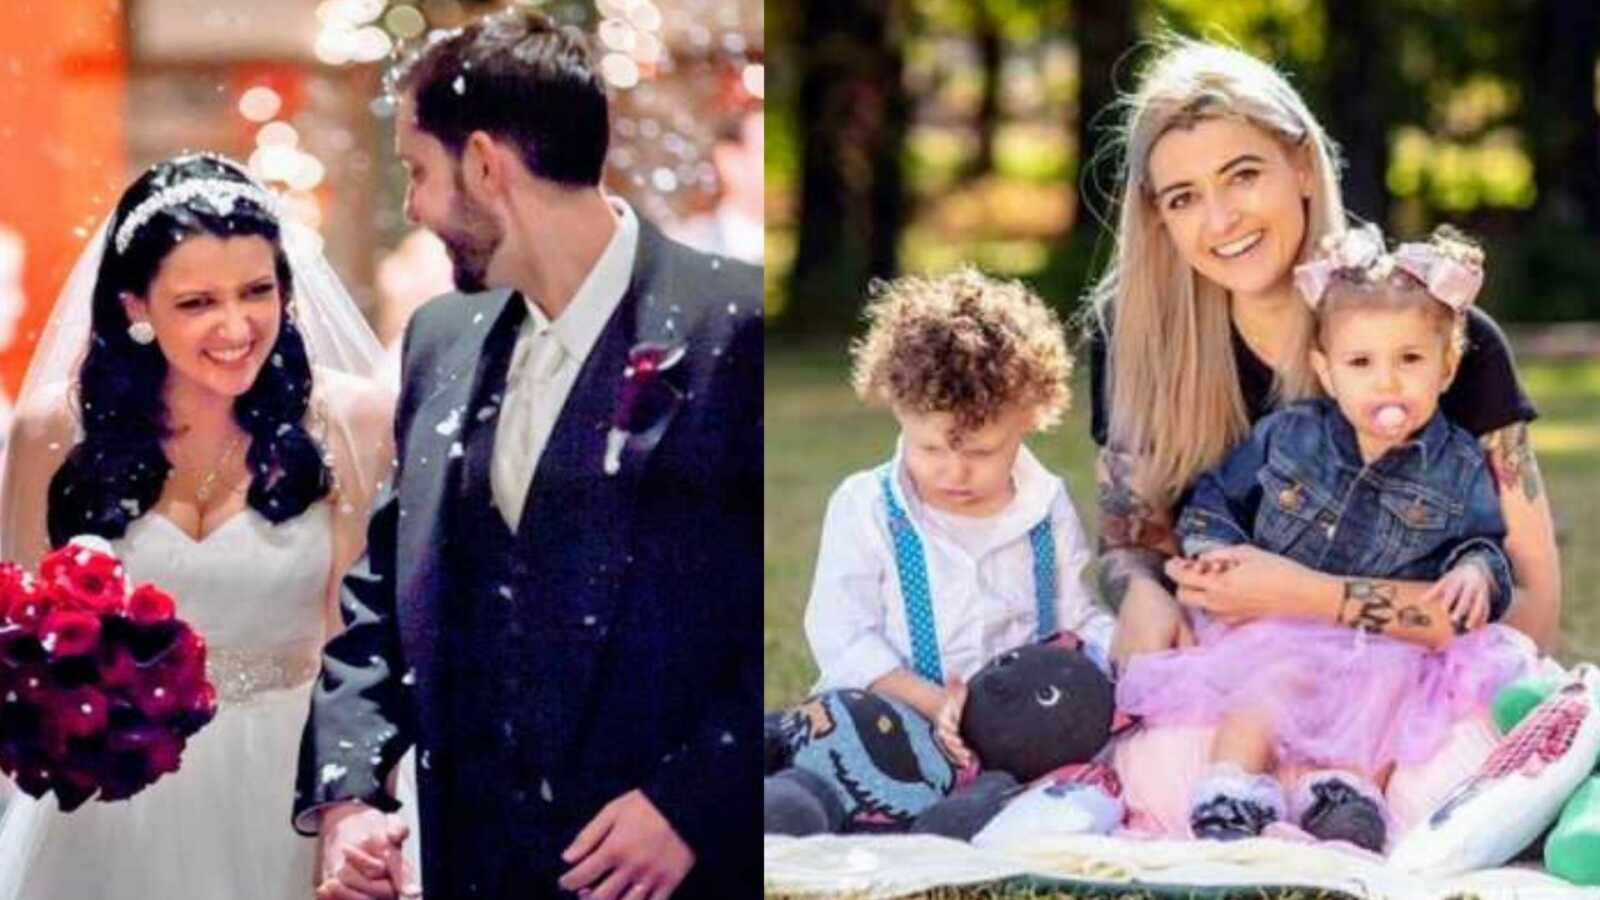 Widow shares photo from her wedding with her late husband and a photo after his death with her two children